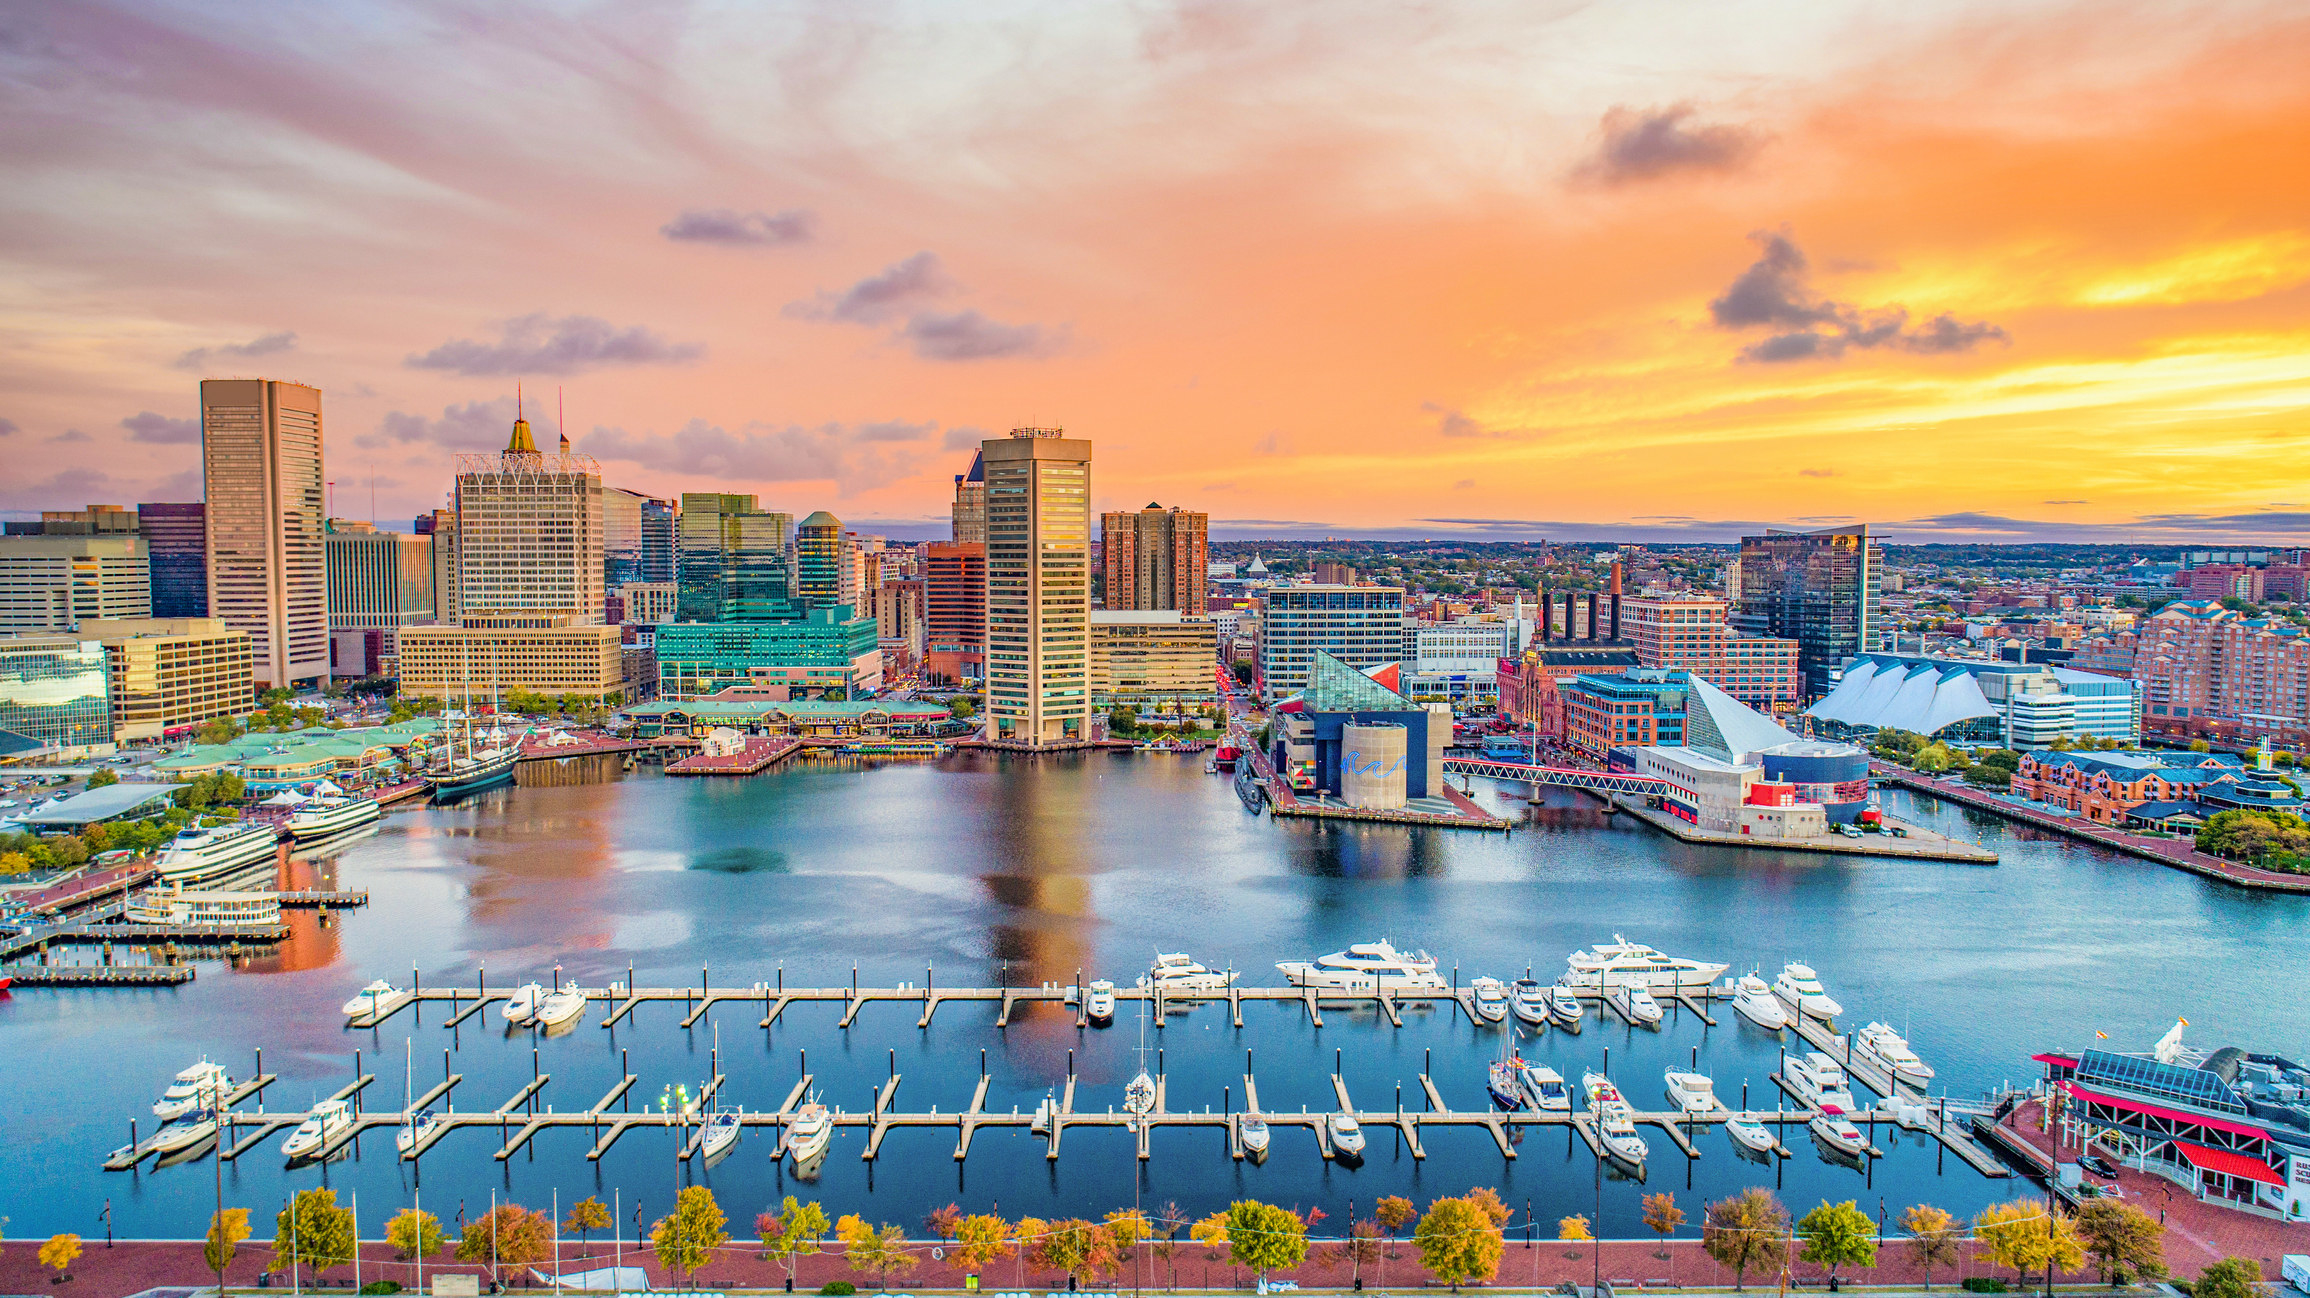 Boats in the harbor in Baltimore with tall buildings in the background